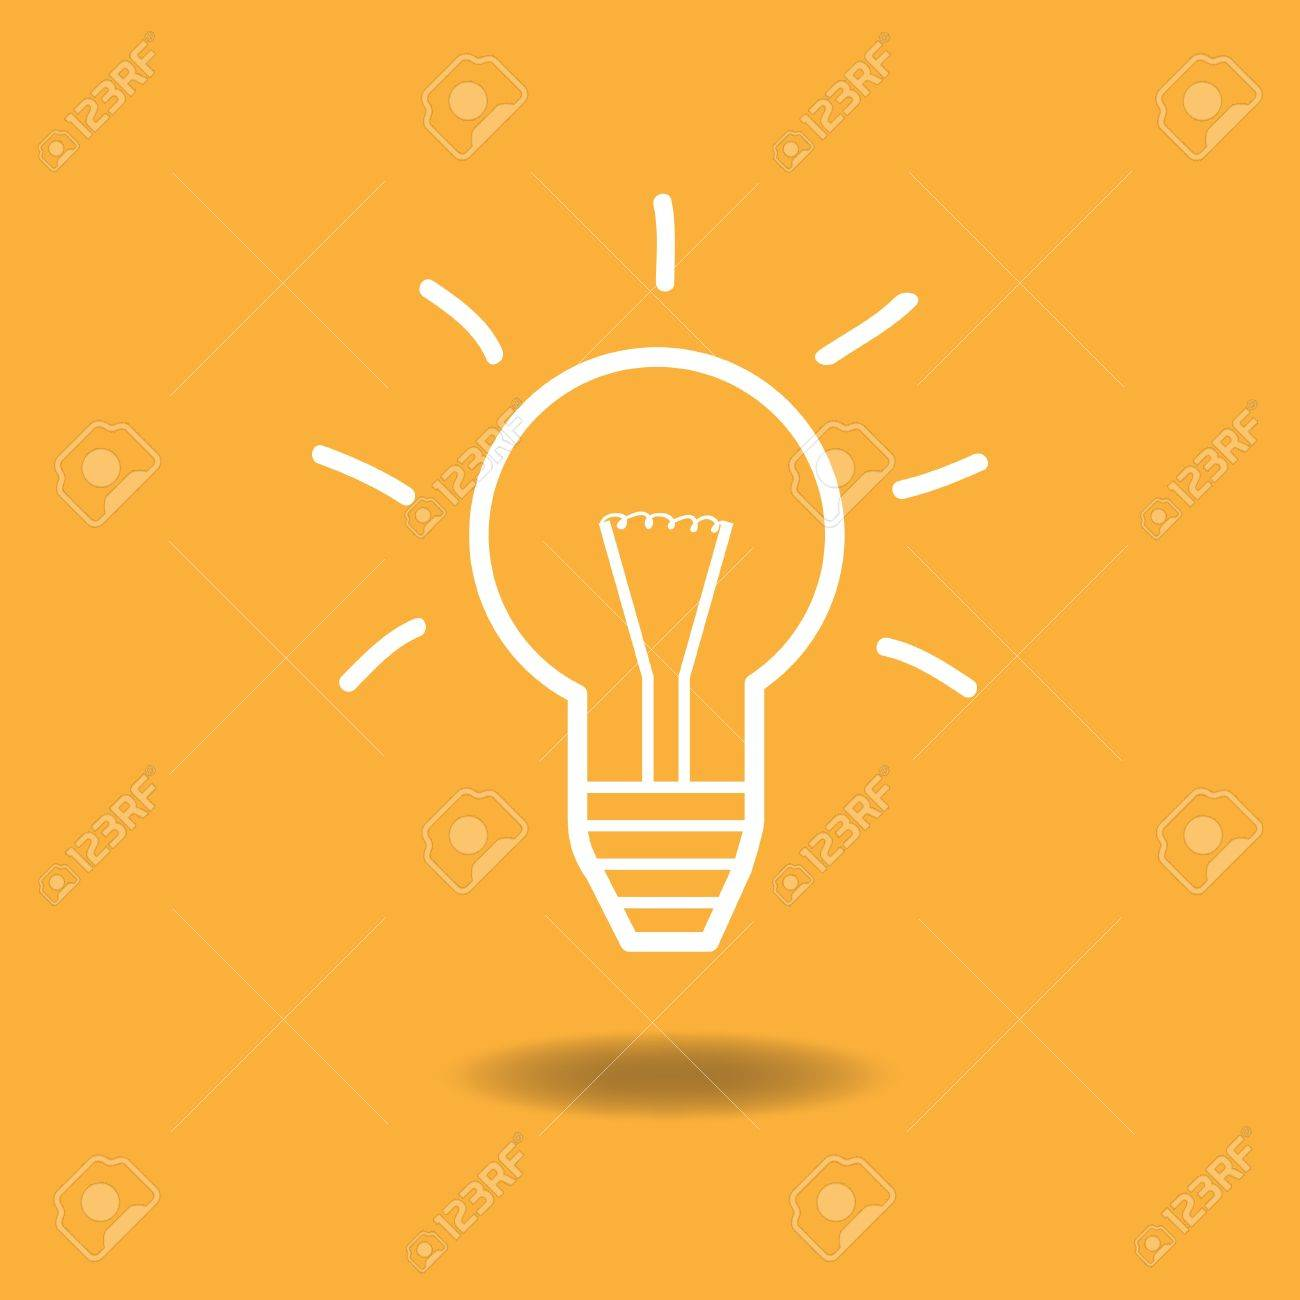 Image Of A Lightbulb Idea Illustration Against A Colorful Background. Stock  Vector   14921059